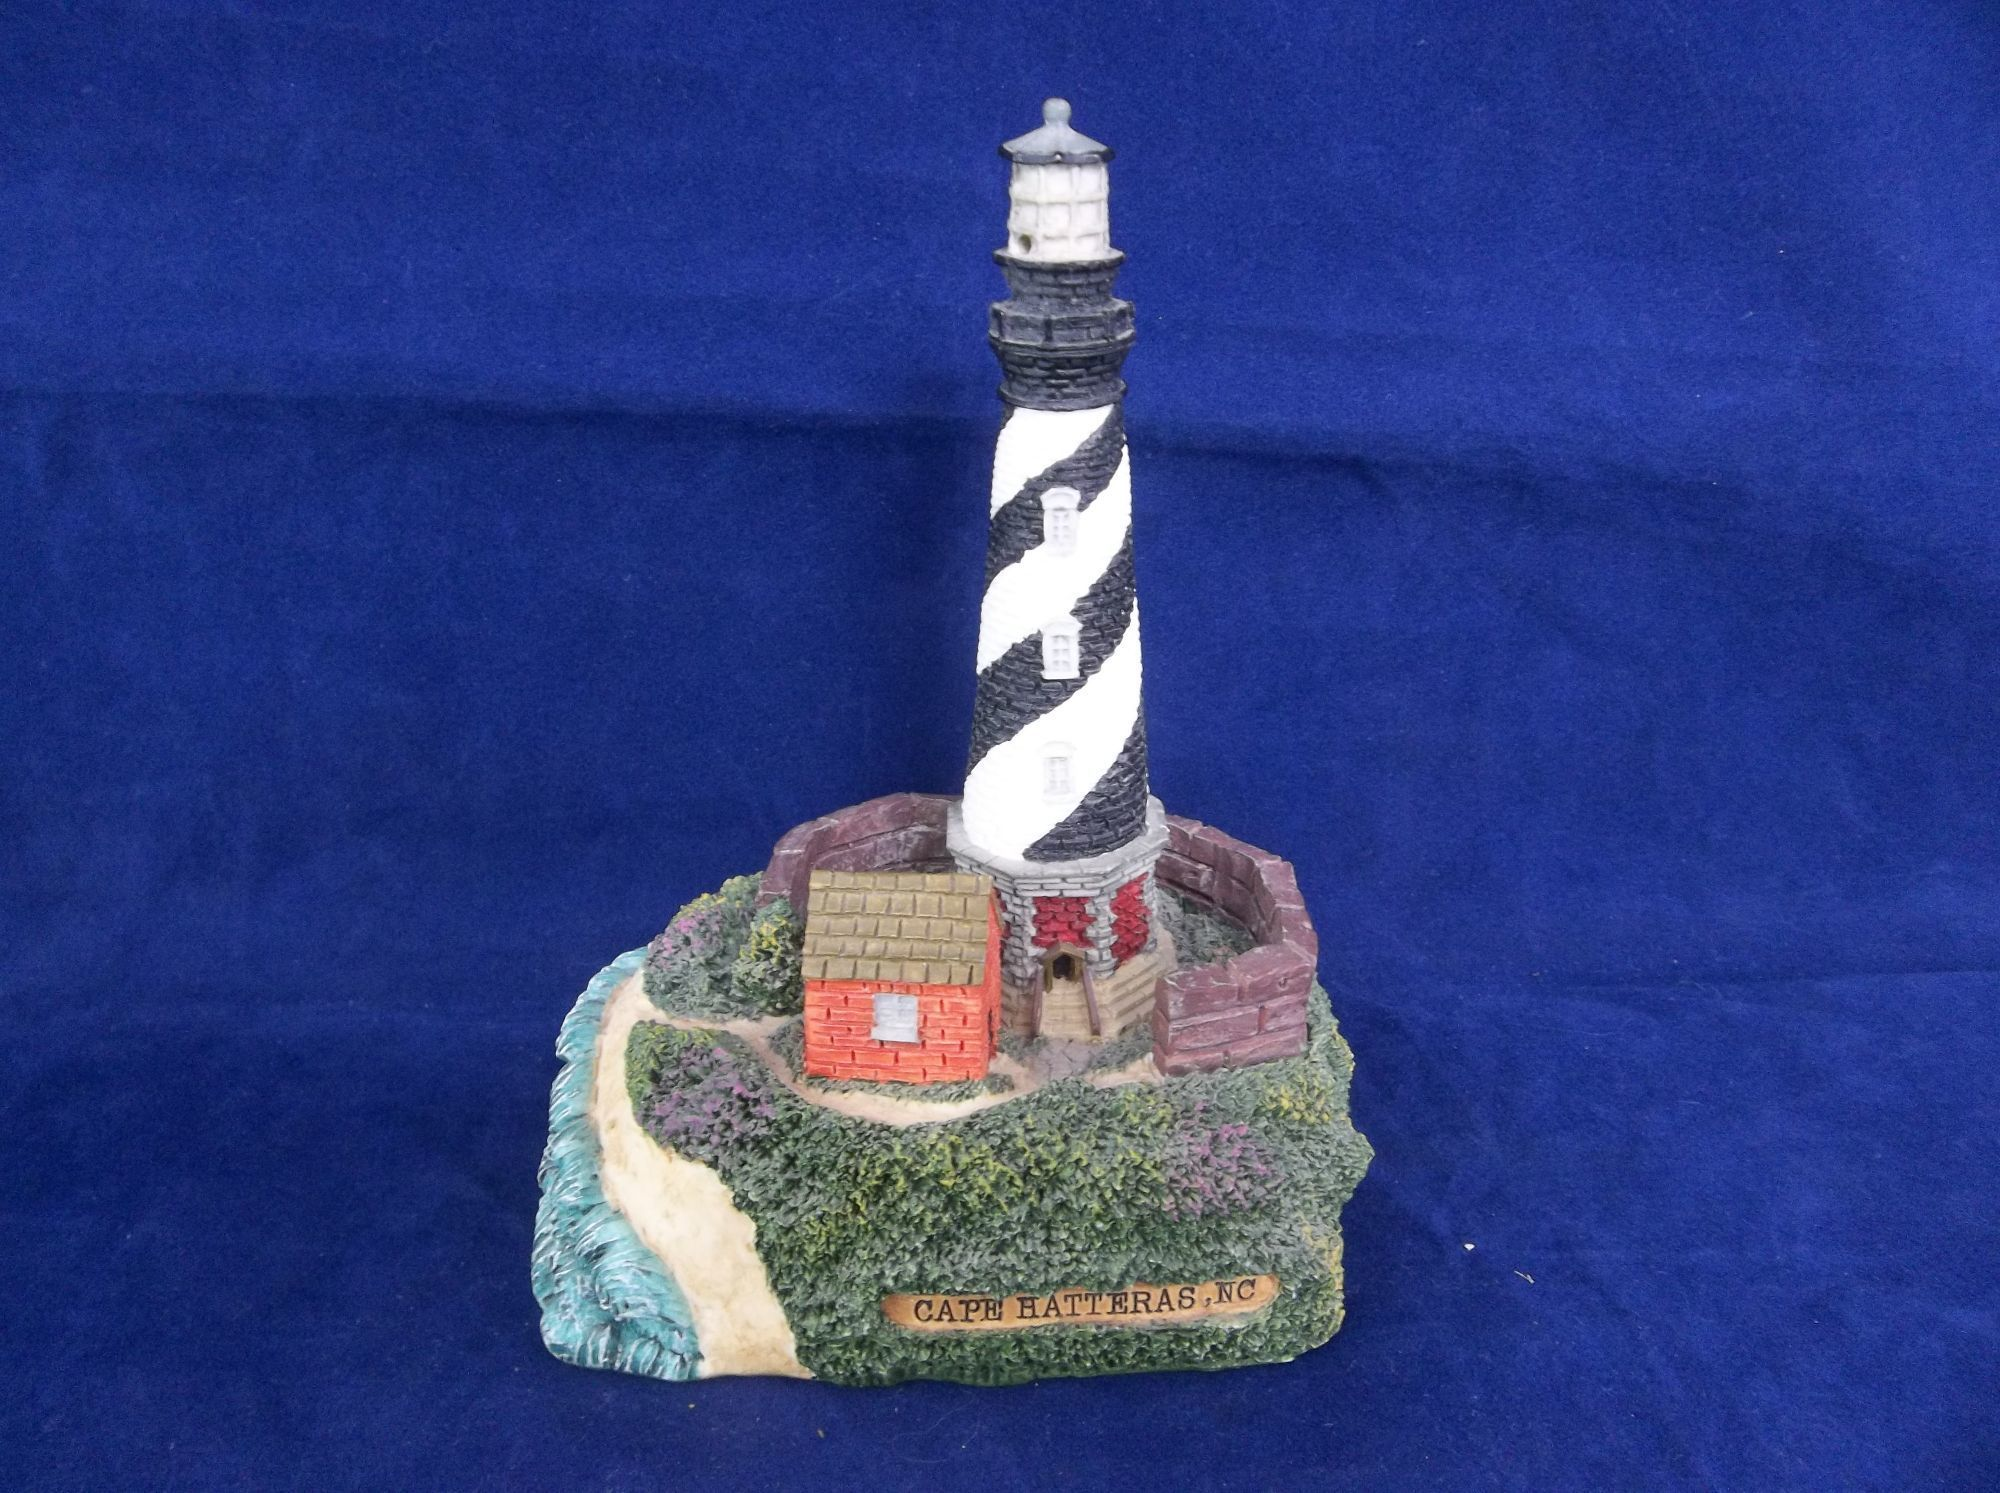 Decorative Lighthouses That Light Up  from i.pinimg.com